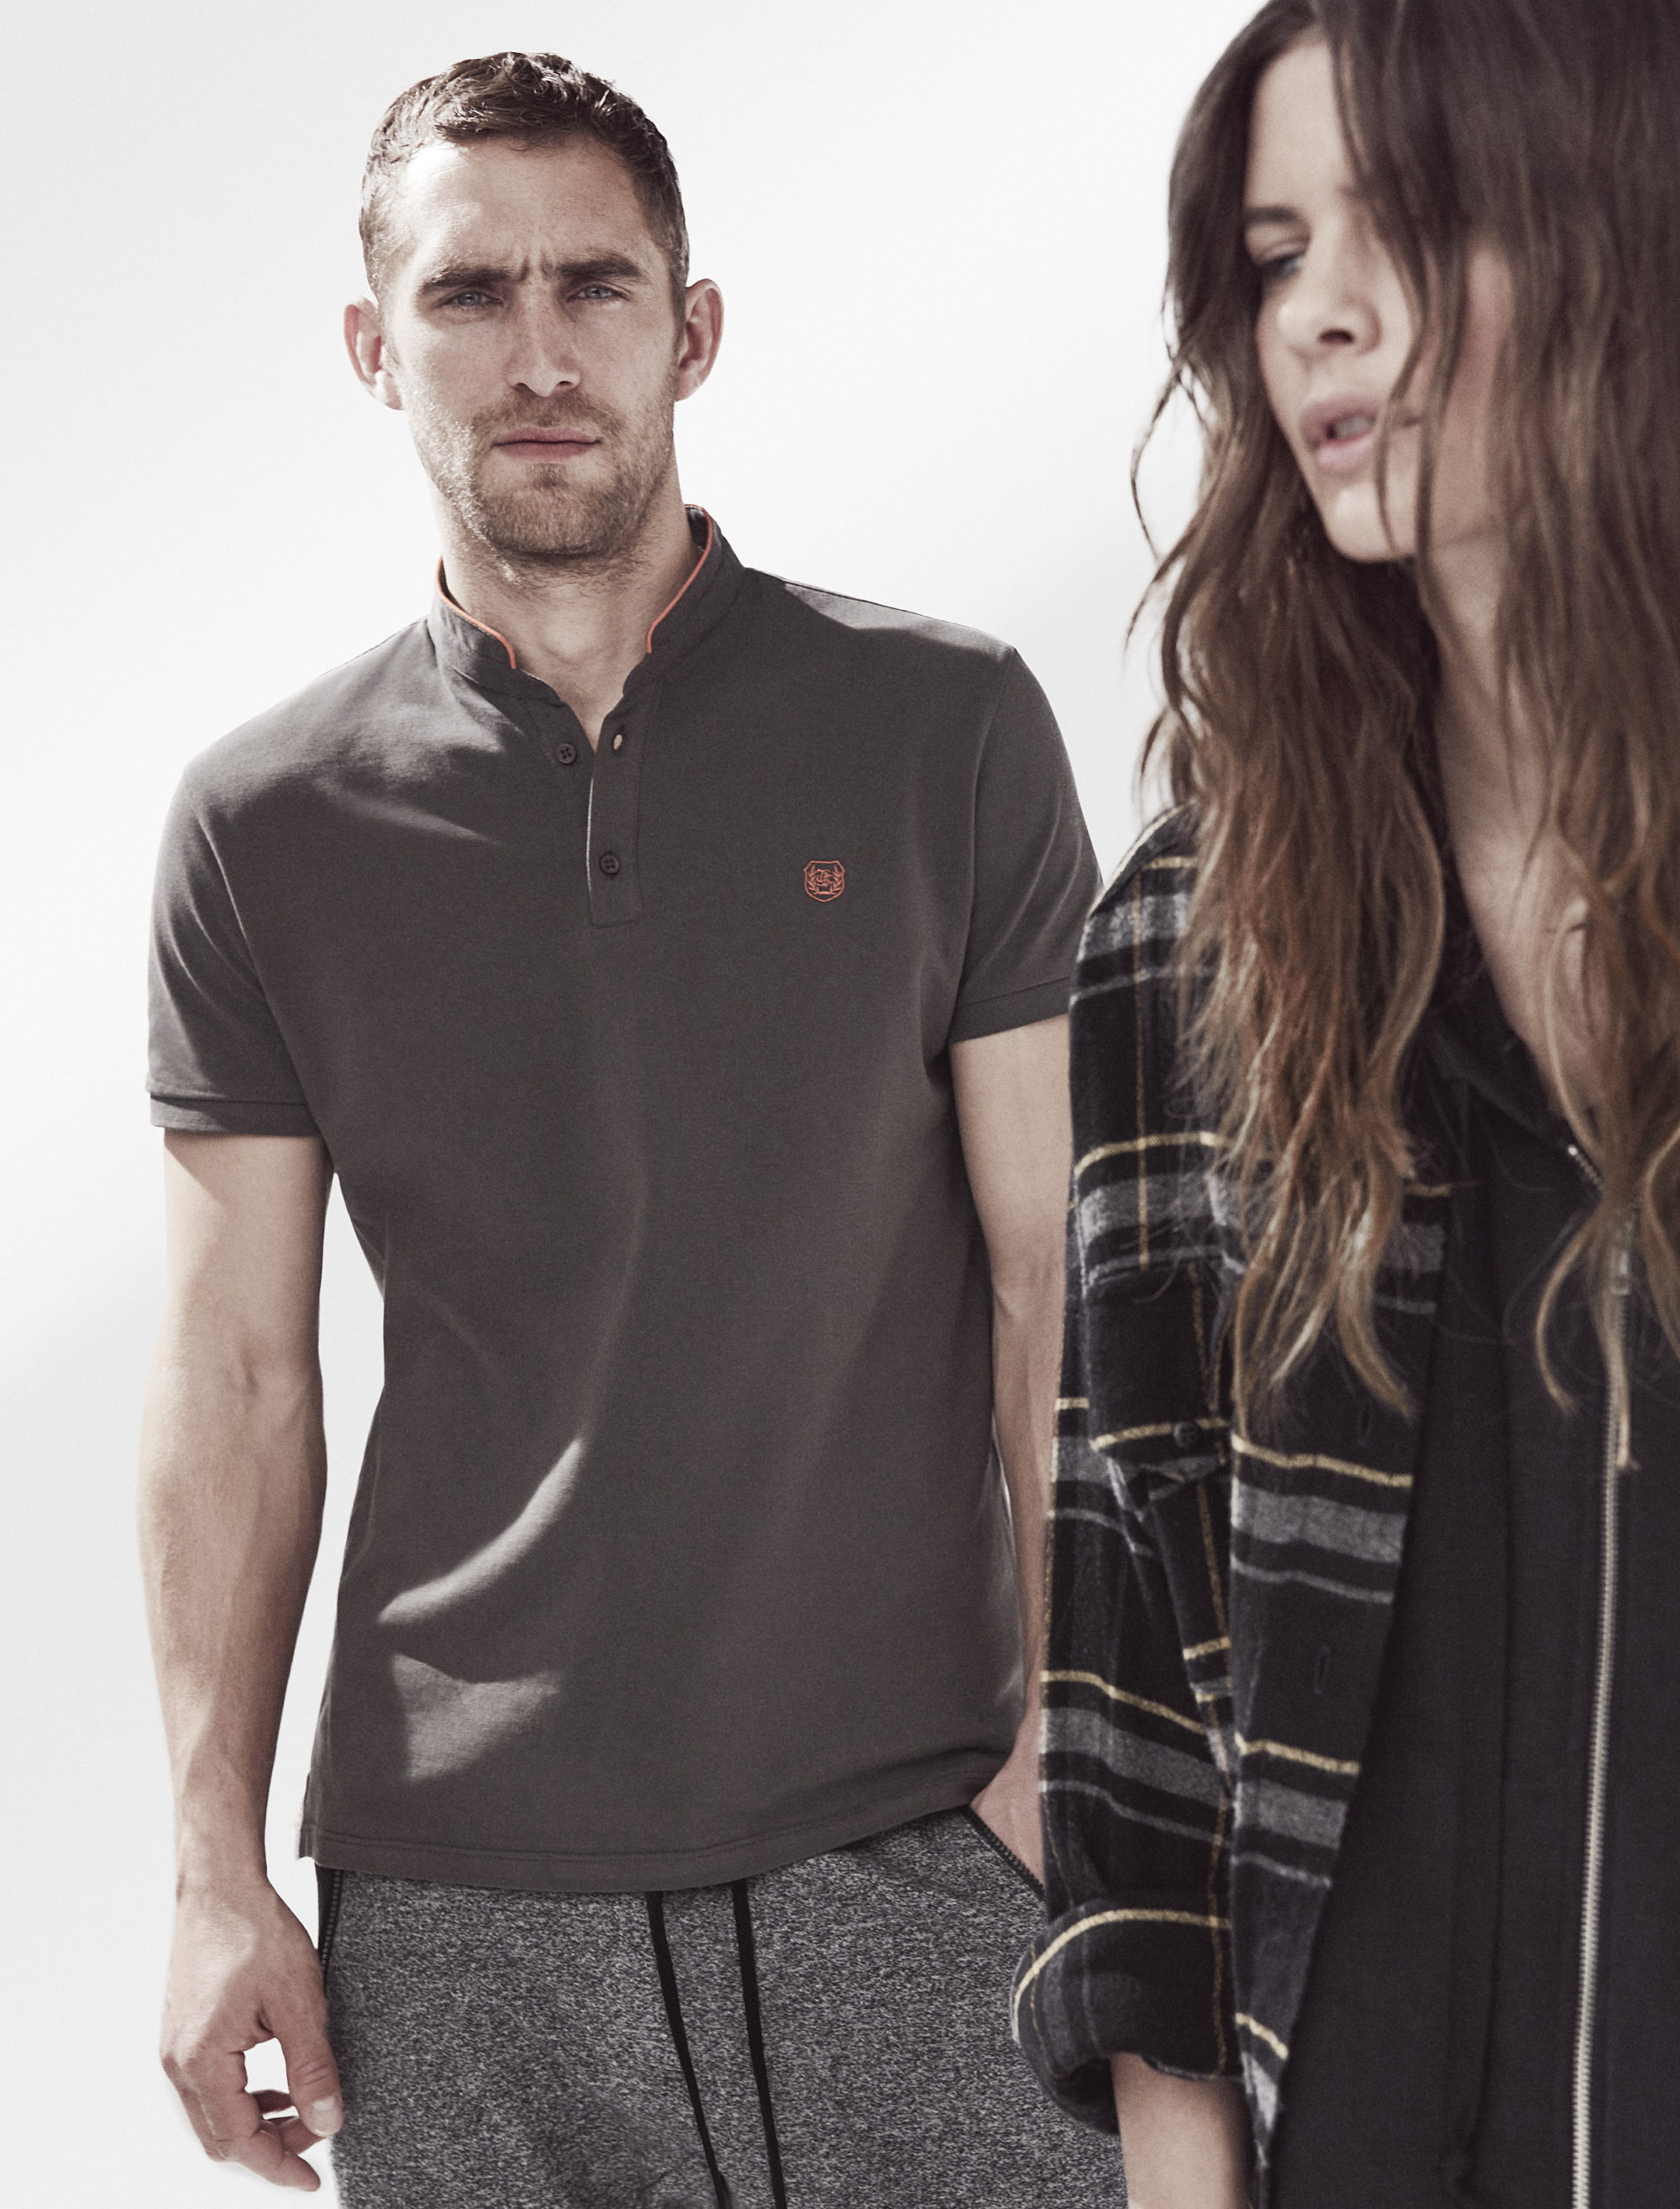 The Kooples FW16 campaign